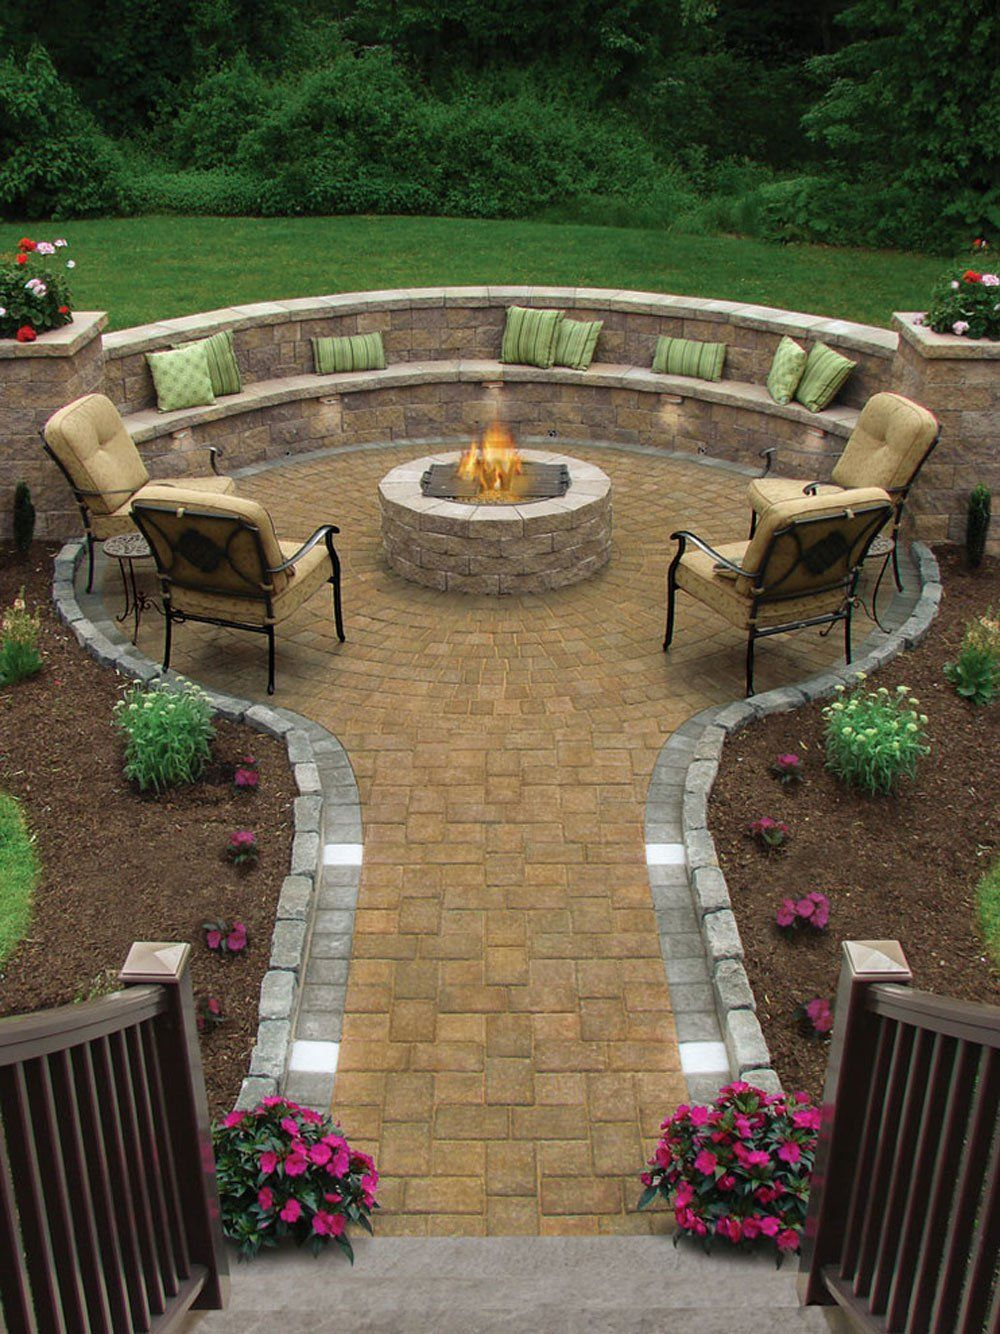 17 Of The Most Amazing Seating Area Around The Fire Pit Ever within Backyard Ideas With Fire Pits